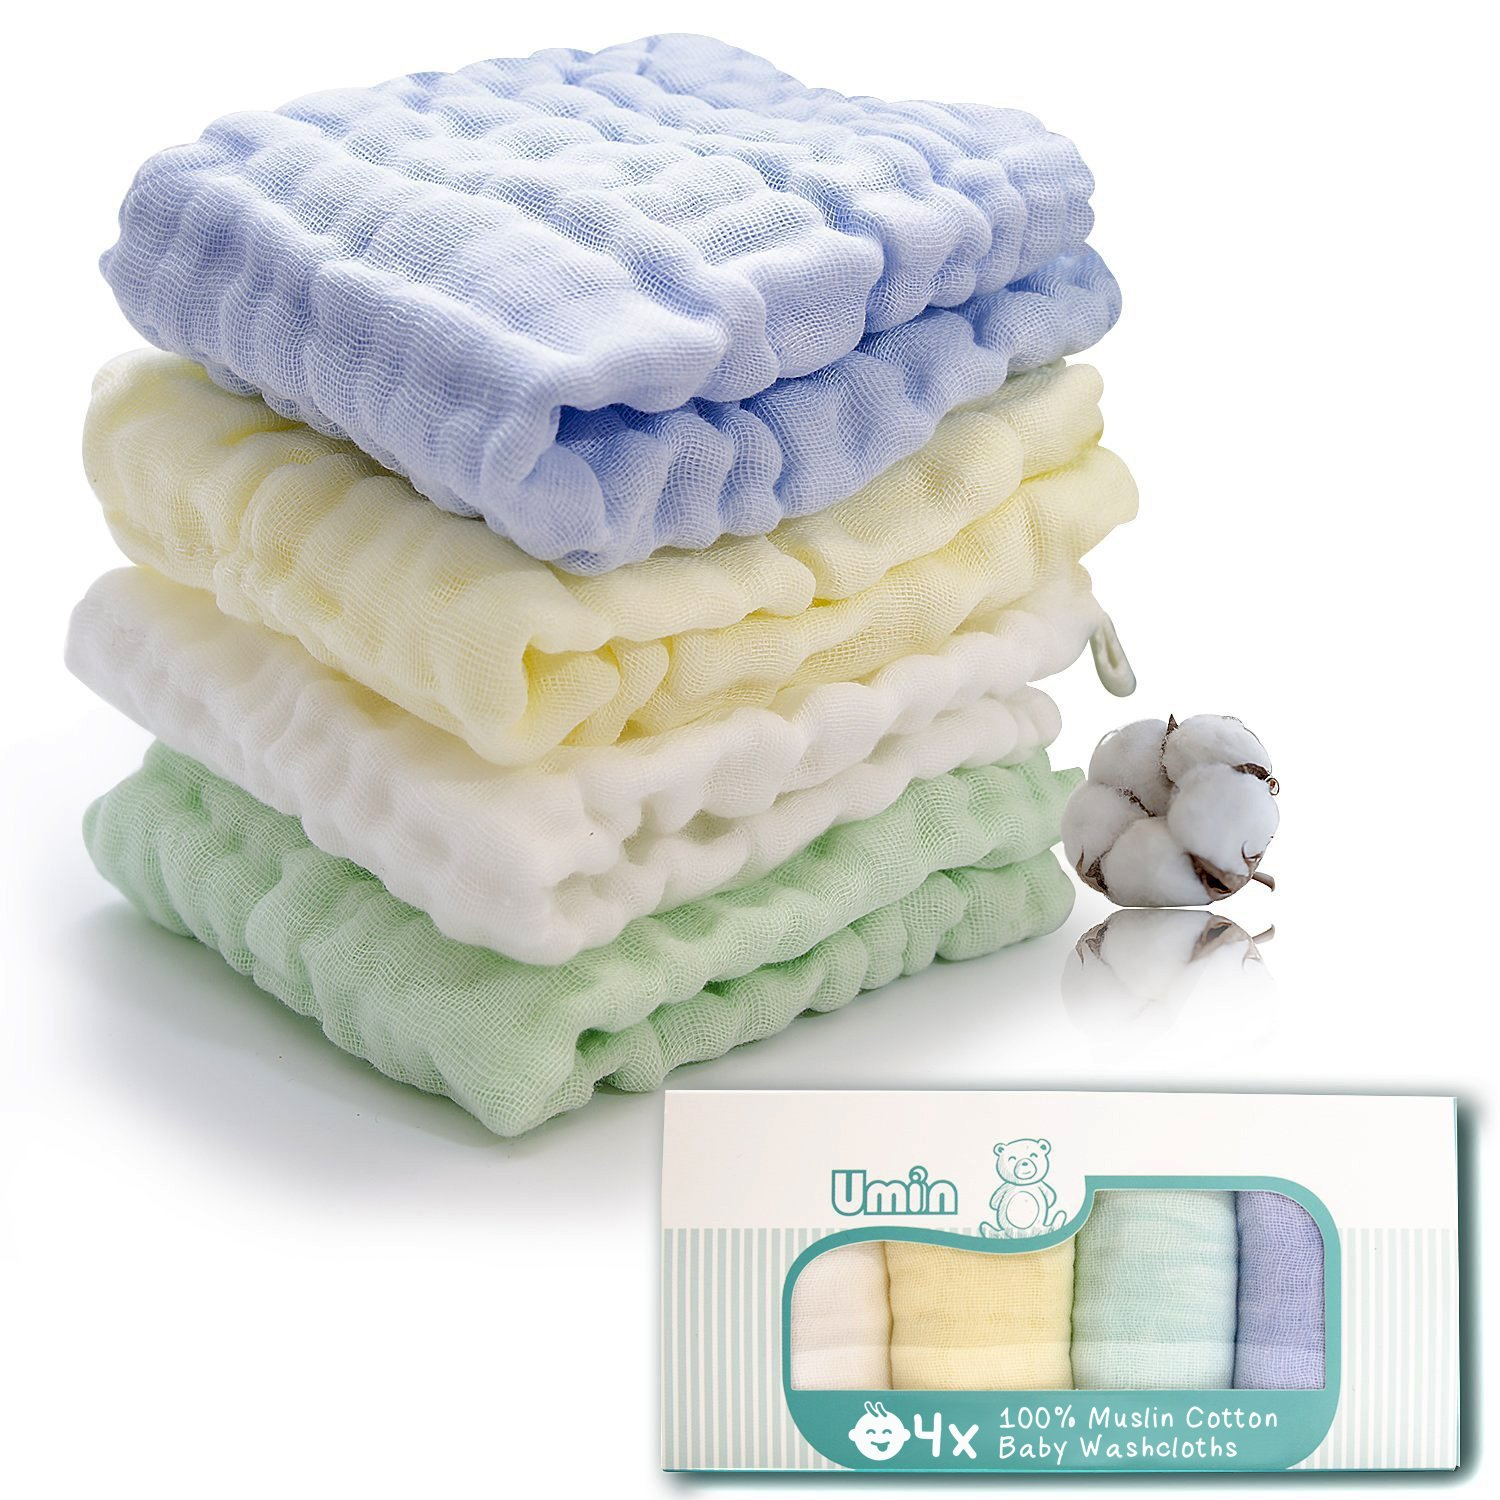 Umiin Baby Washcloths, Super Soft Natural Cotton Baby Muslin Washcloths and Baby Face Towel for Sensitive Skin, Perfect Baby Gifts,12 x 12 inches, Set of 4